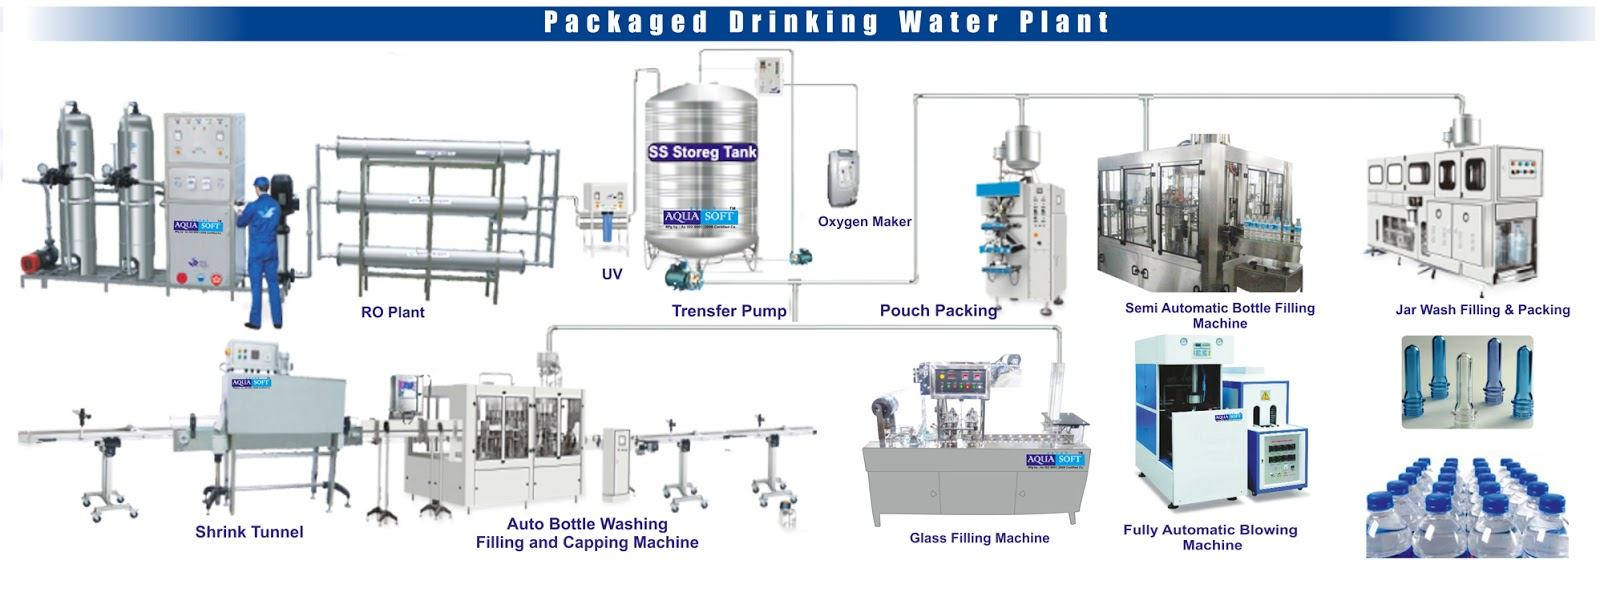 project report on packaged drinking water plant essay Conclusion - the importance of drinking filtered water the threat of harmful contaminants in drinking water can no longer be reasonably ignored.